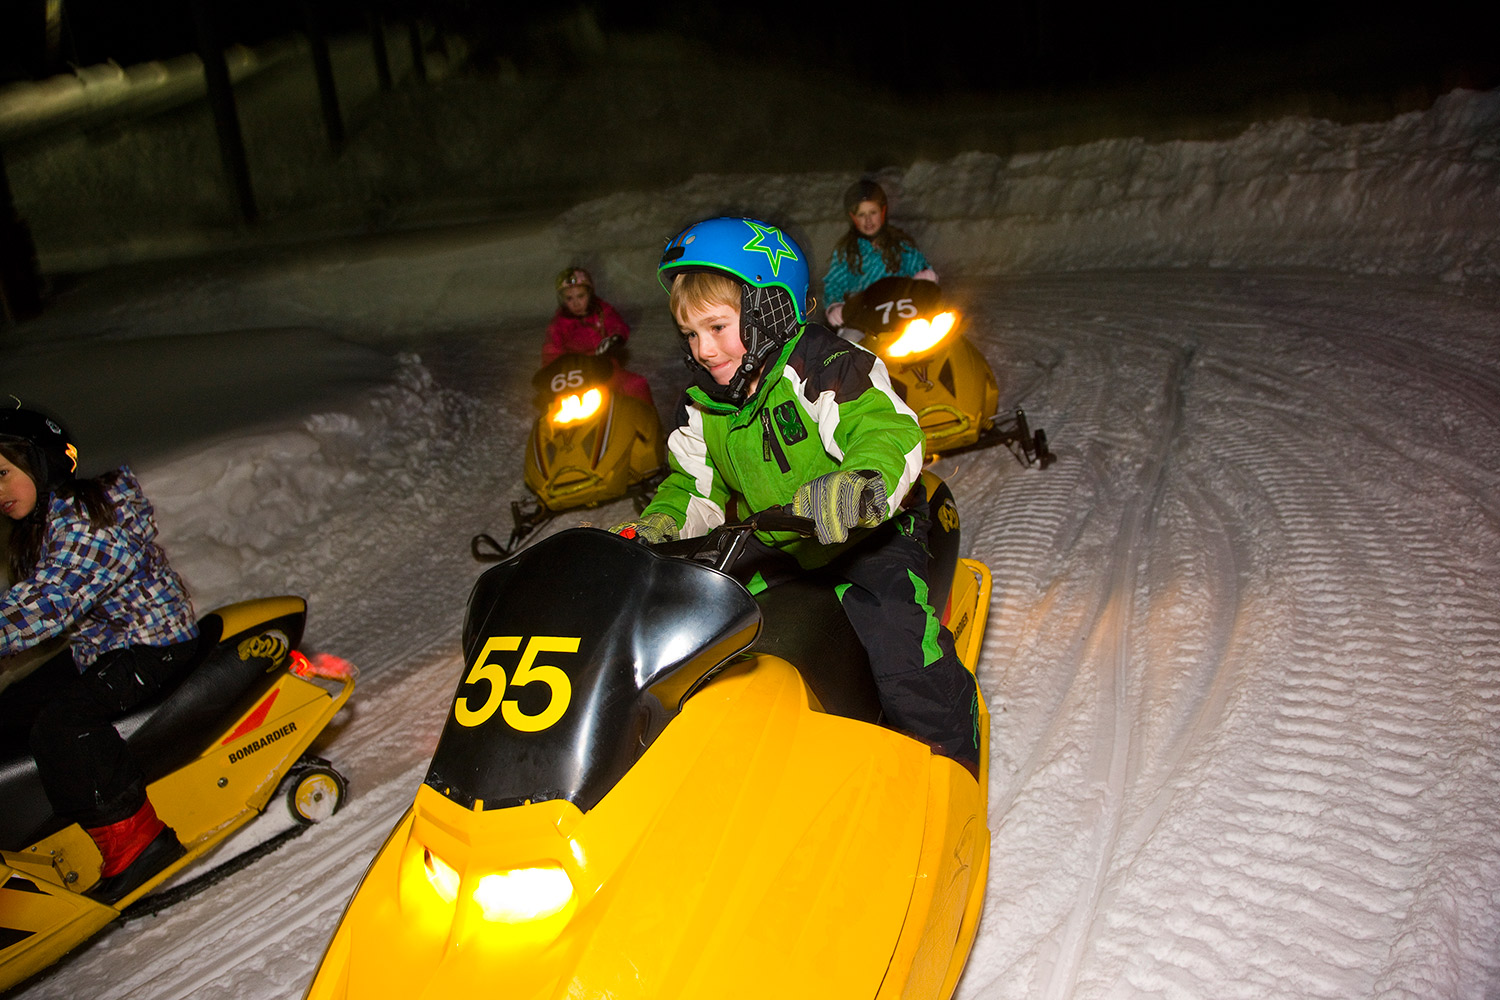 Winter Activities for Kids at Colorado Ski Resorts